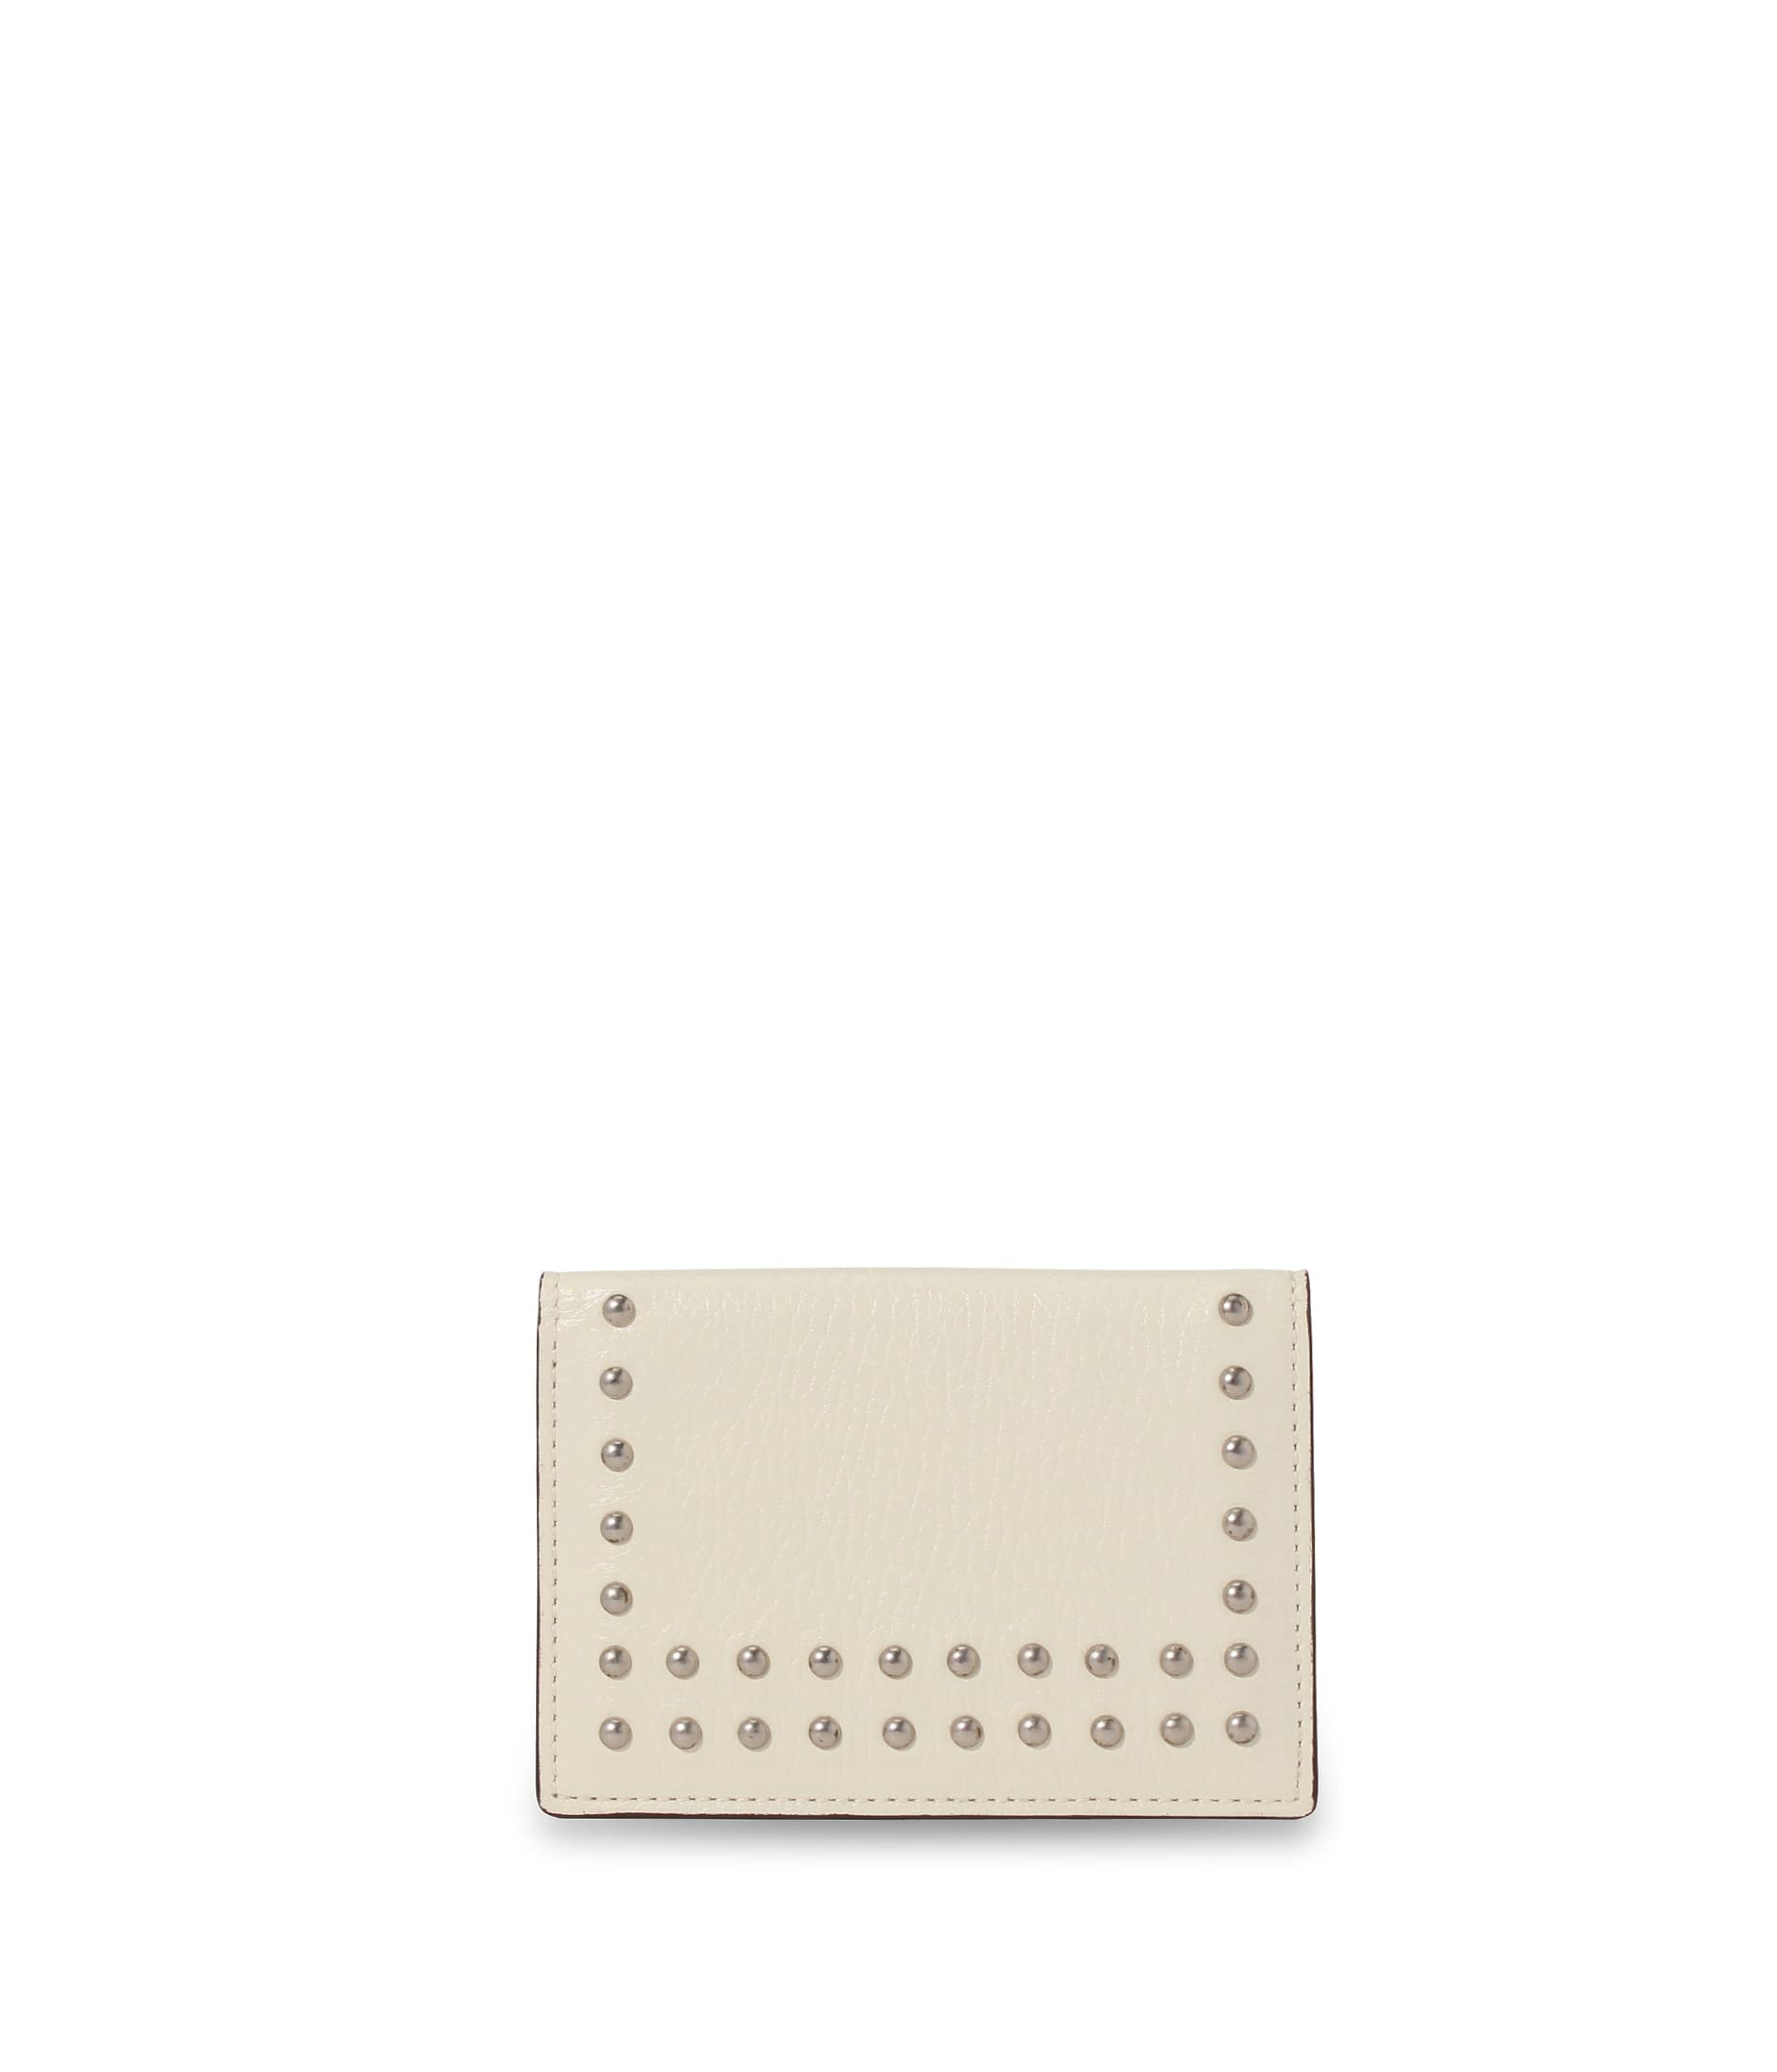 VISIT CARD HOLDER WITH STUDS 詳細画像 W.WHITE 1